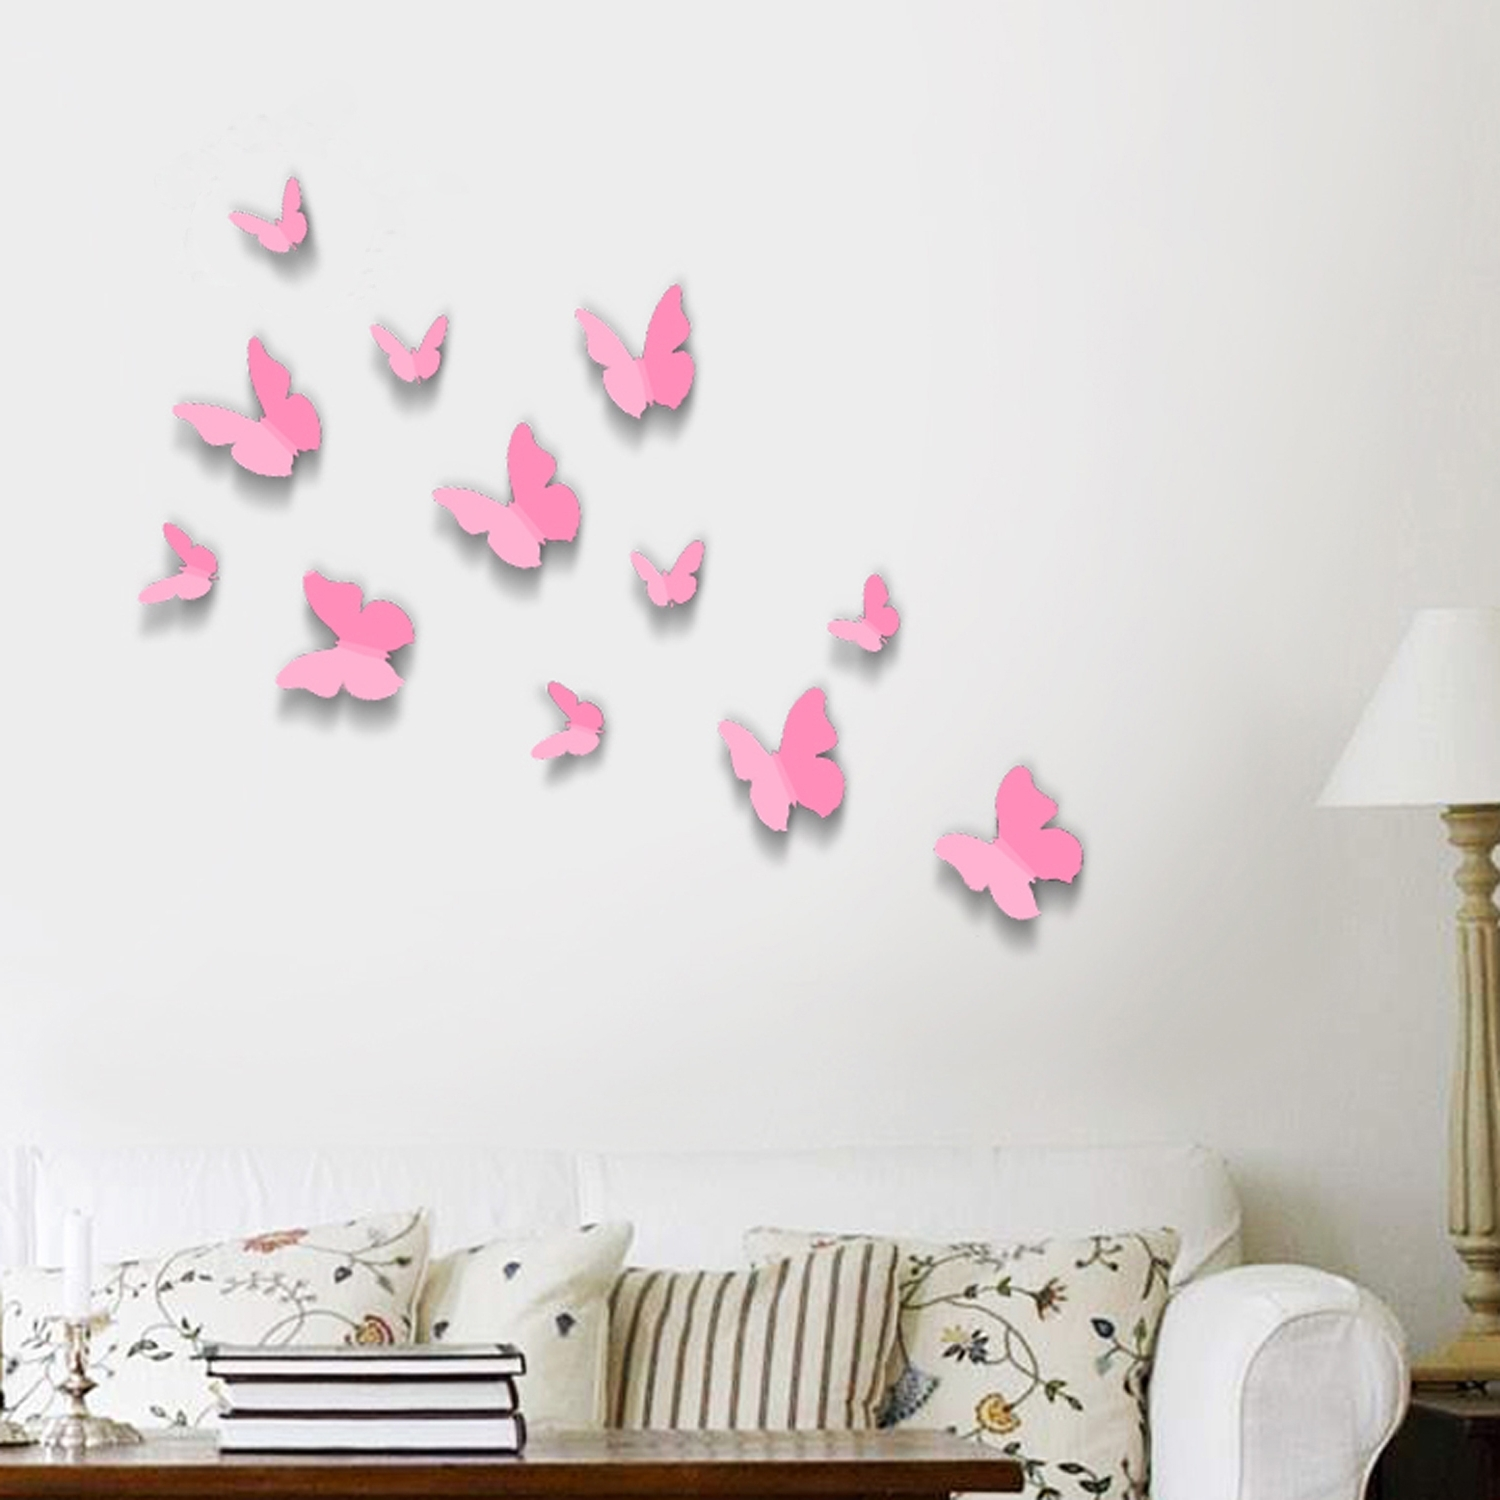 Most Recent D Diy Butterfly Wall Vintage 3D Butterfly Wall Decals – Wall Art In Vintage 3D Wall Art (View 4 of 15)